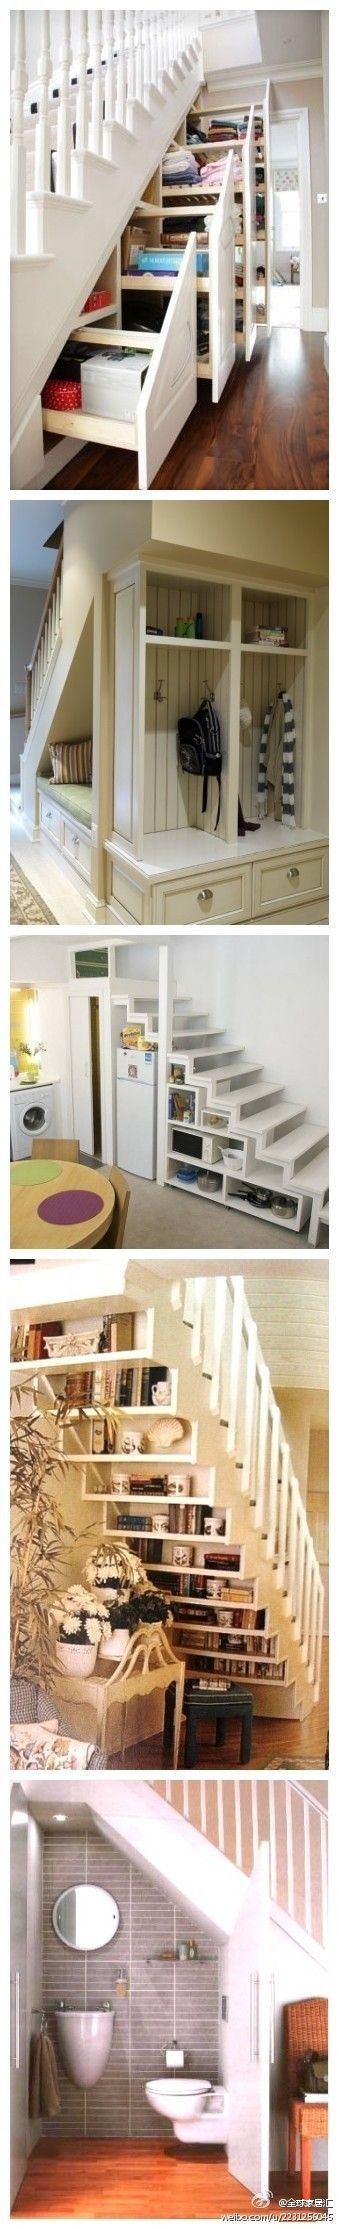 Great+ideas+to+use+up+traditionally+wasted+space - Click image to find more DIY & Crafts Pinterest pins